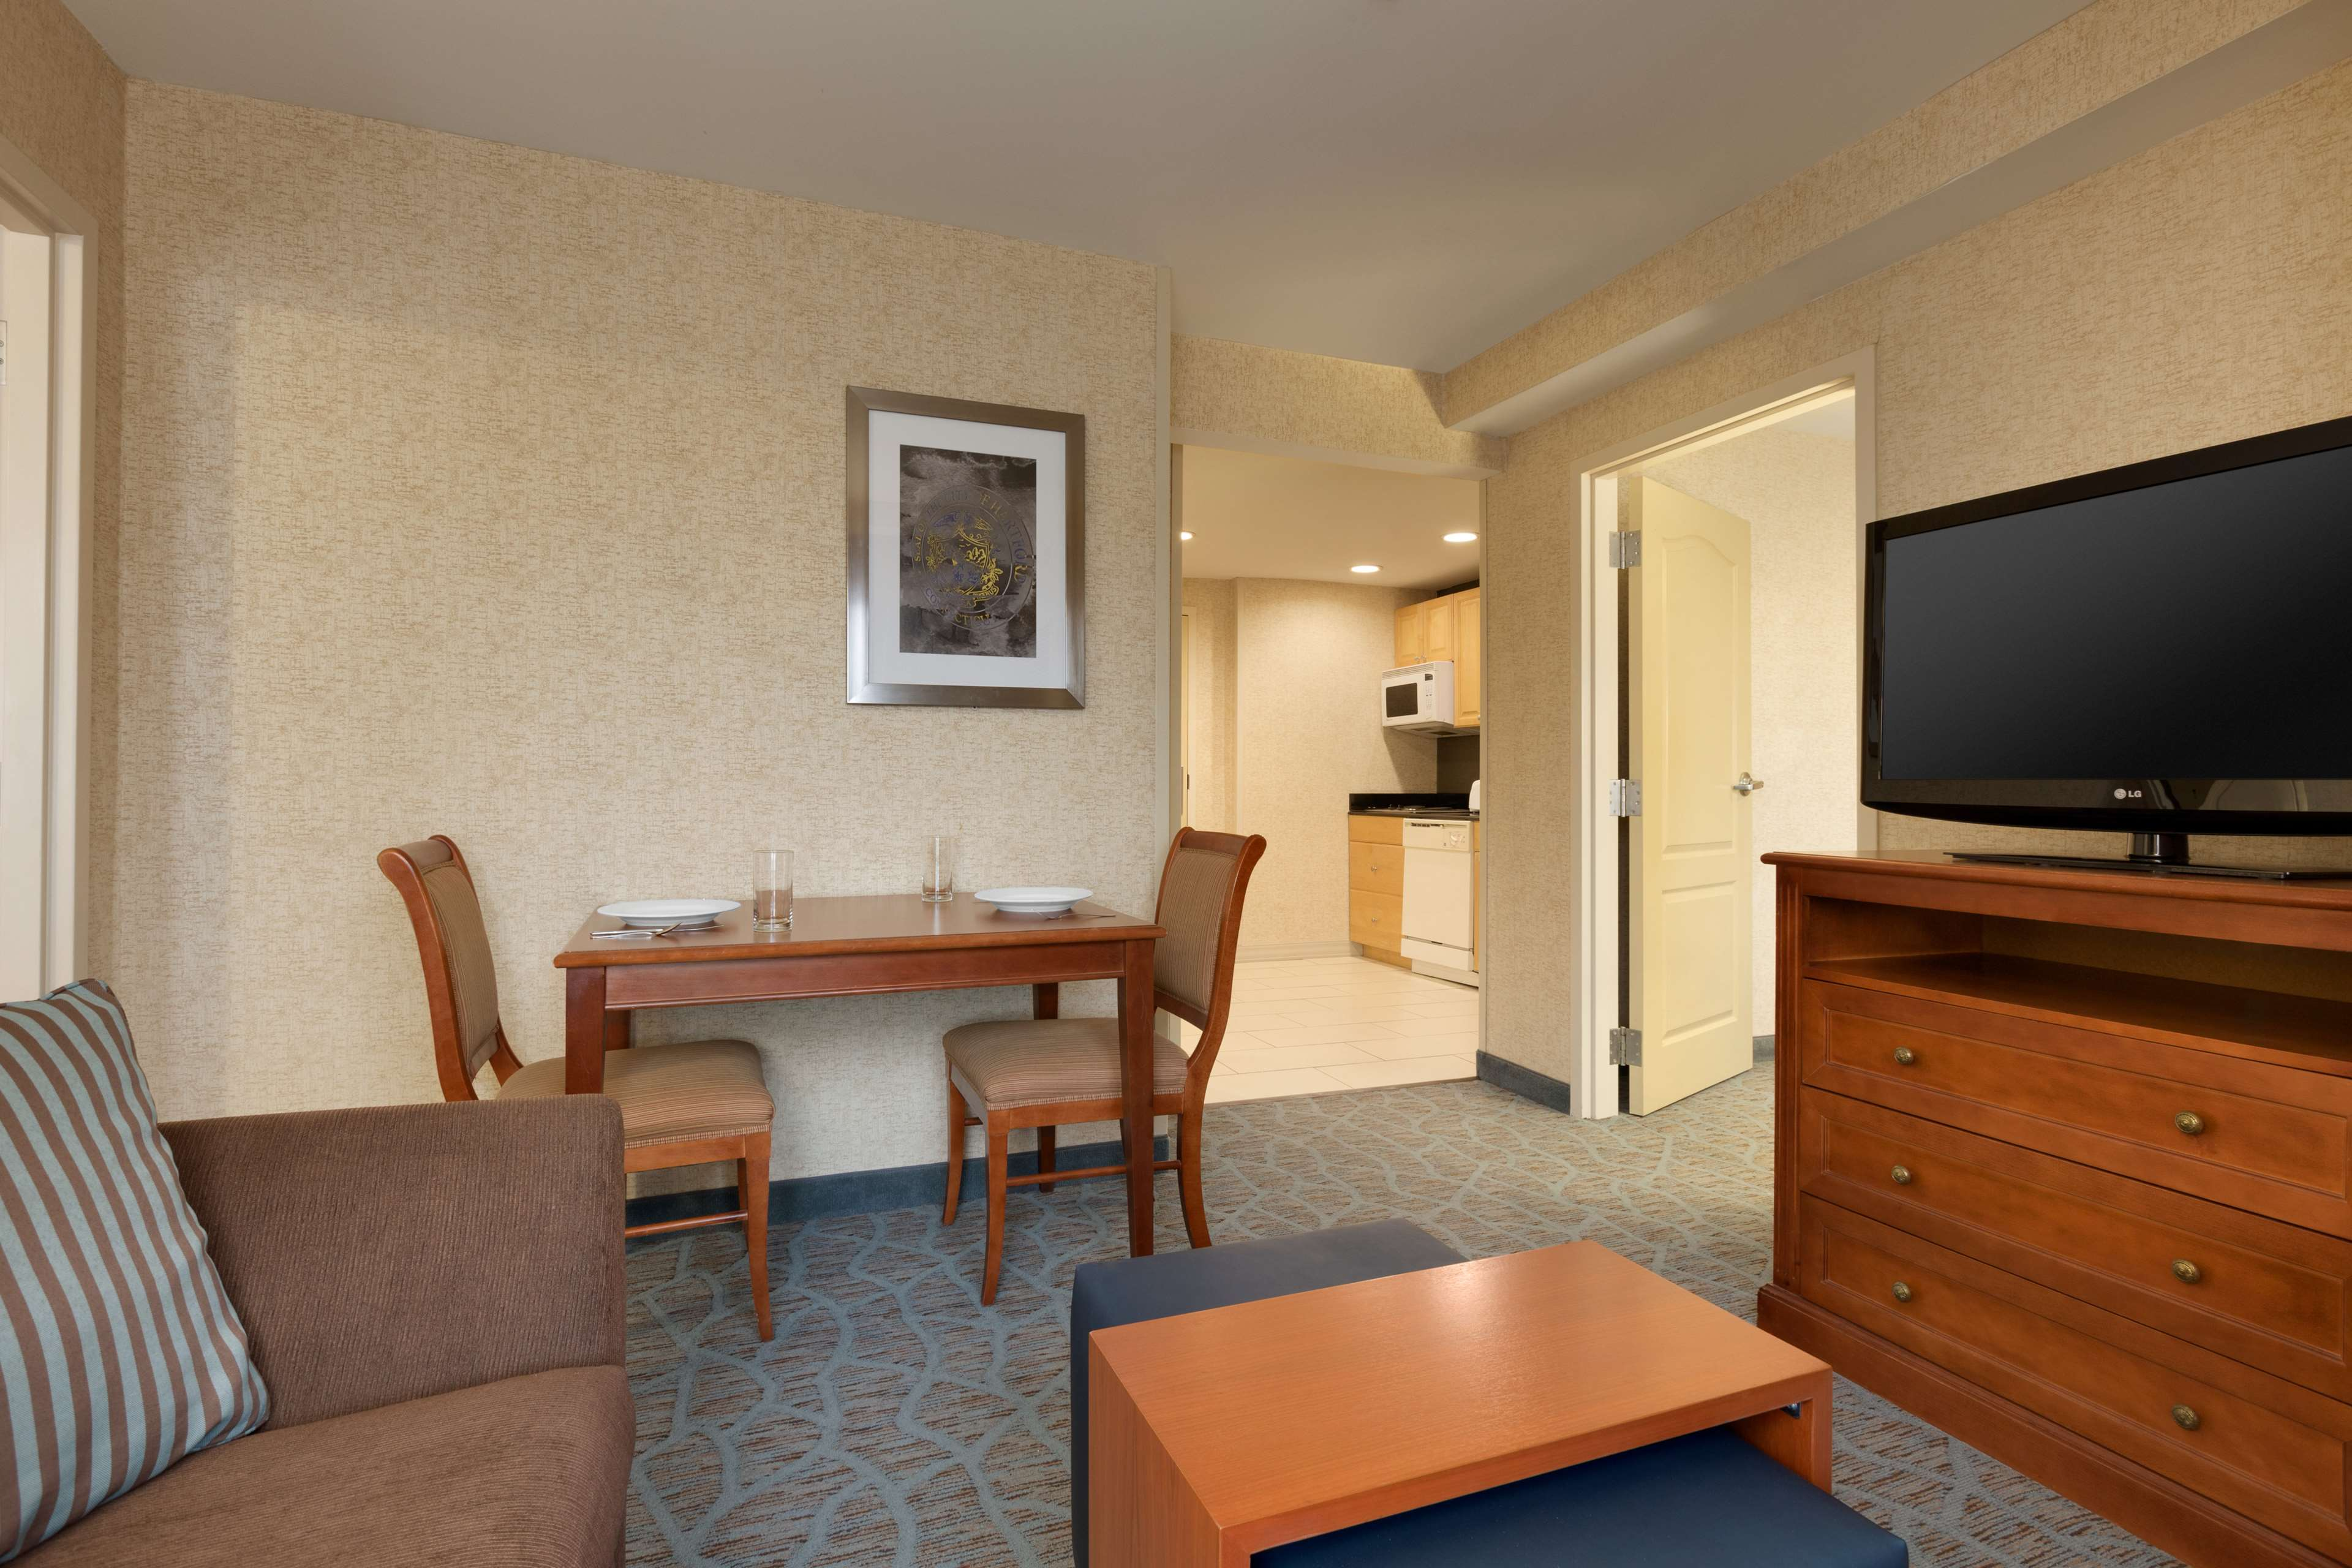 Homewood Suites by Hilton Hartford Downtown image 16